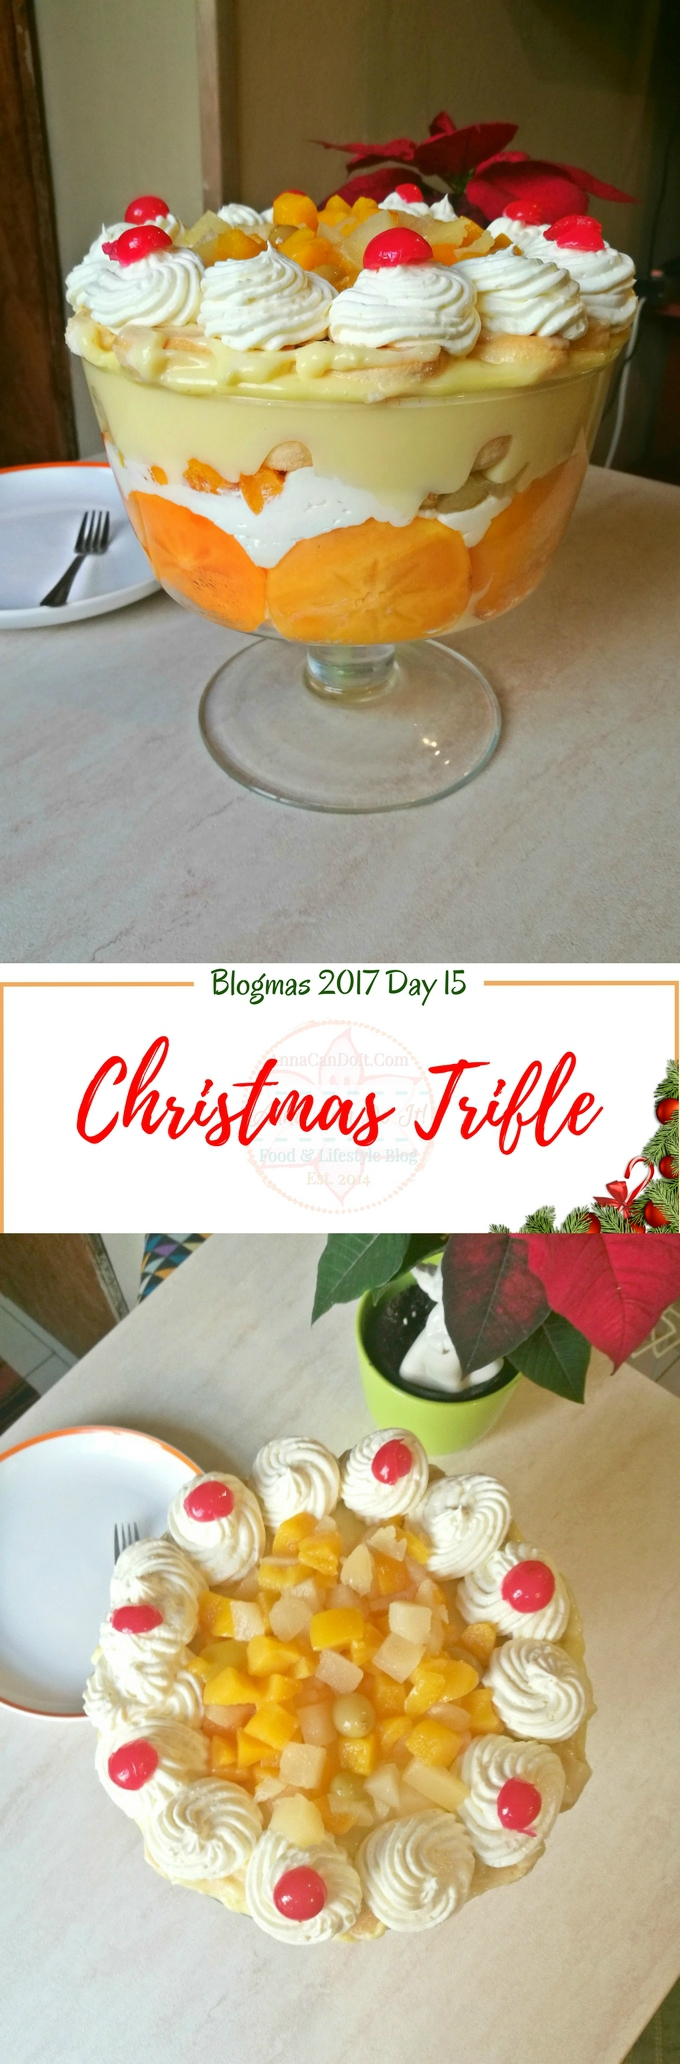 Christmas Trifle - Blogmas 2017 Day 15 - Anna Can Do It!